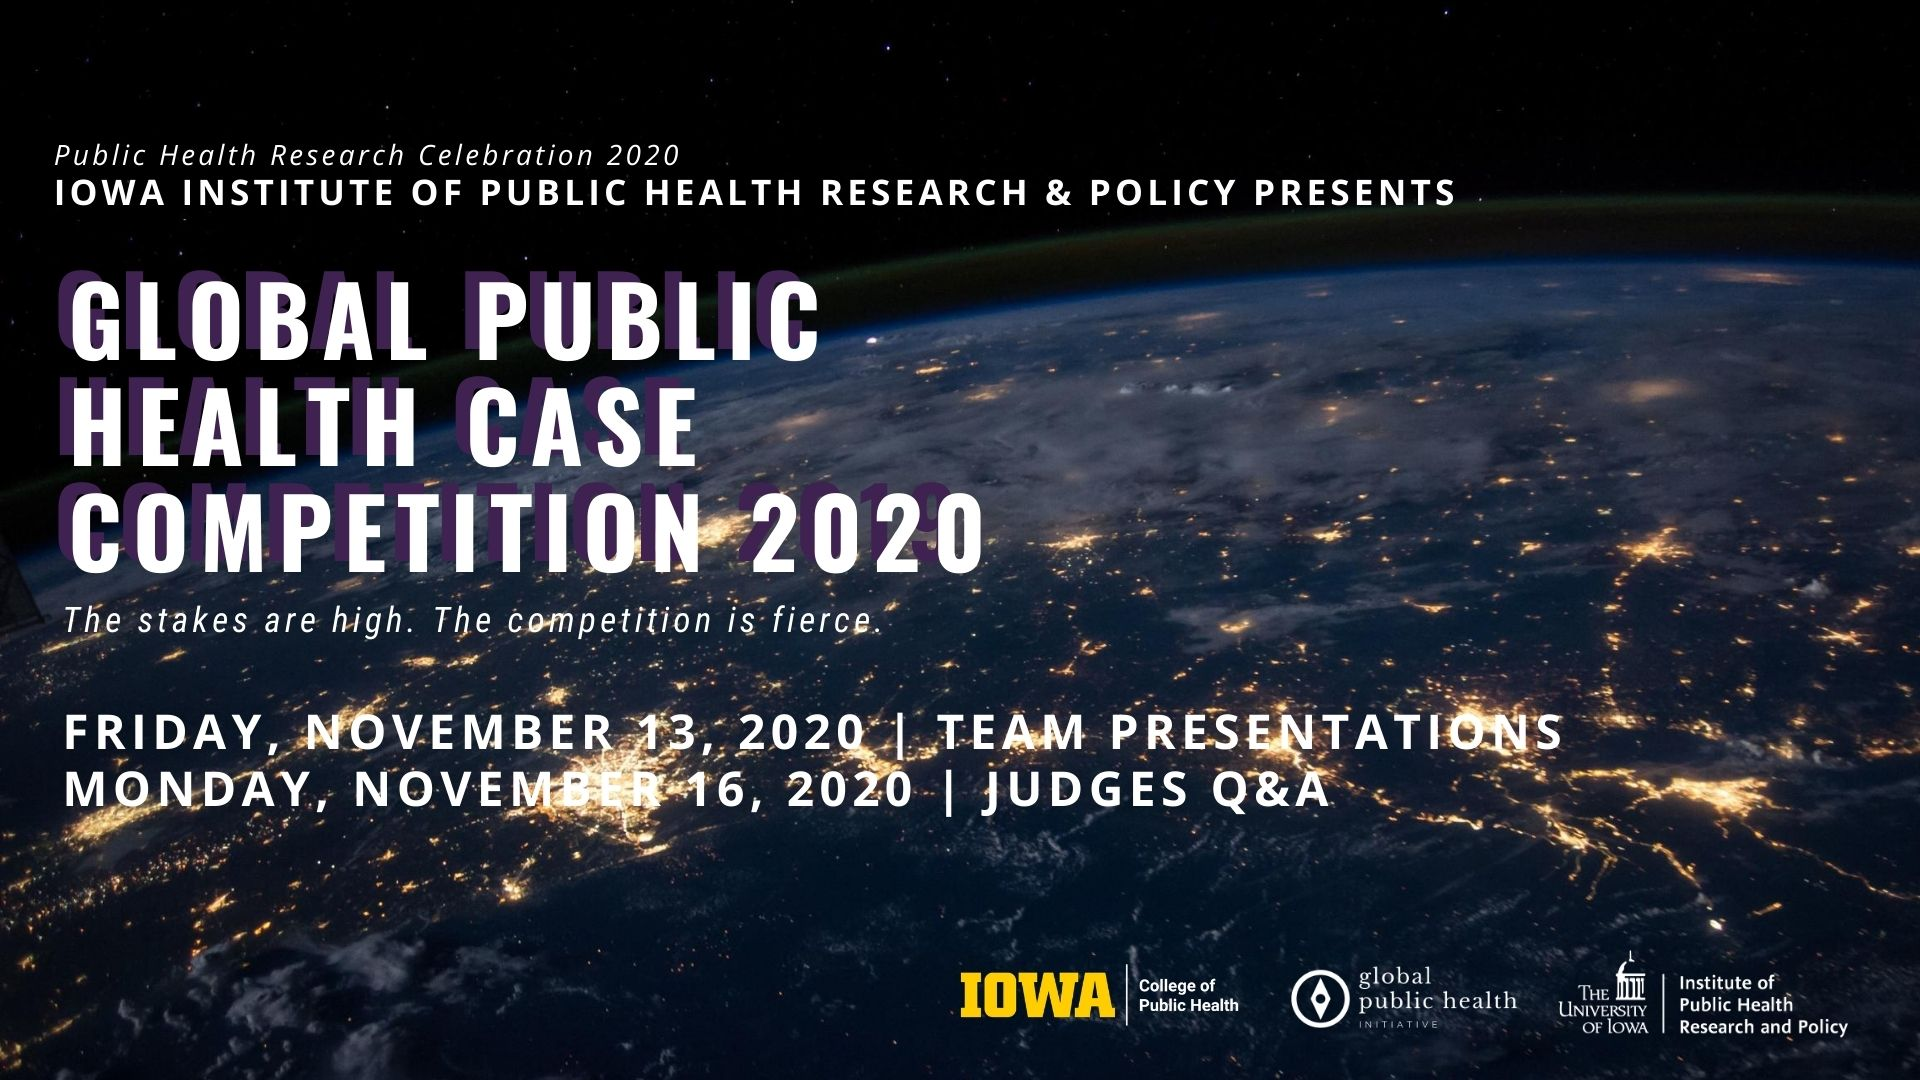 IIPHRP Global Health Case Competition | Live Judging Q&A promotional image